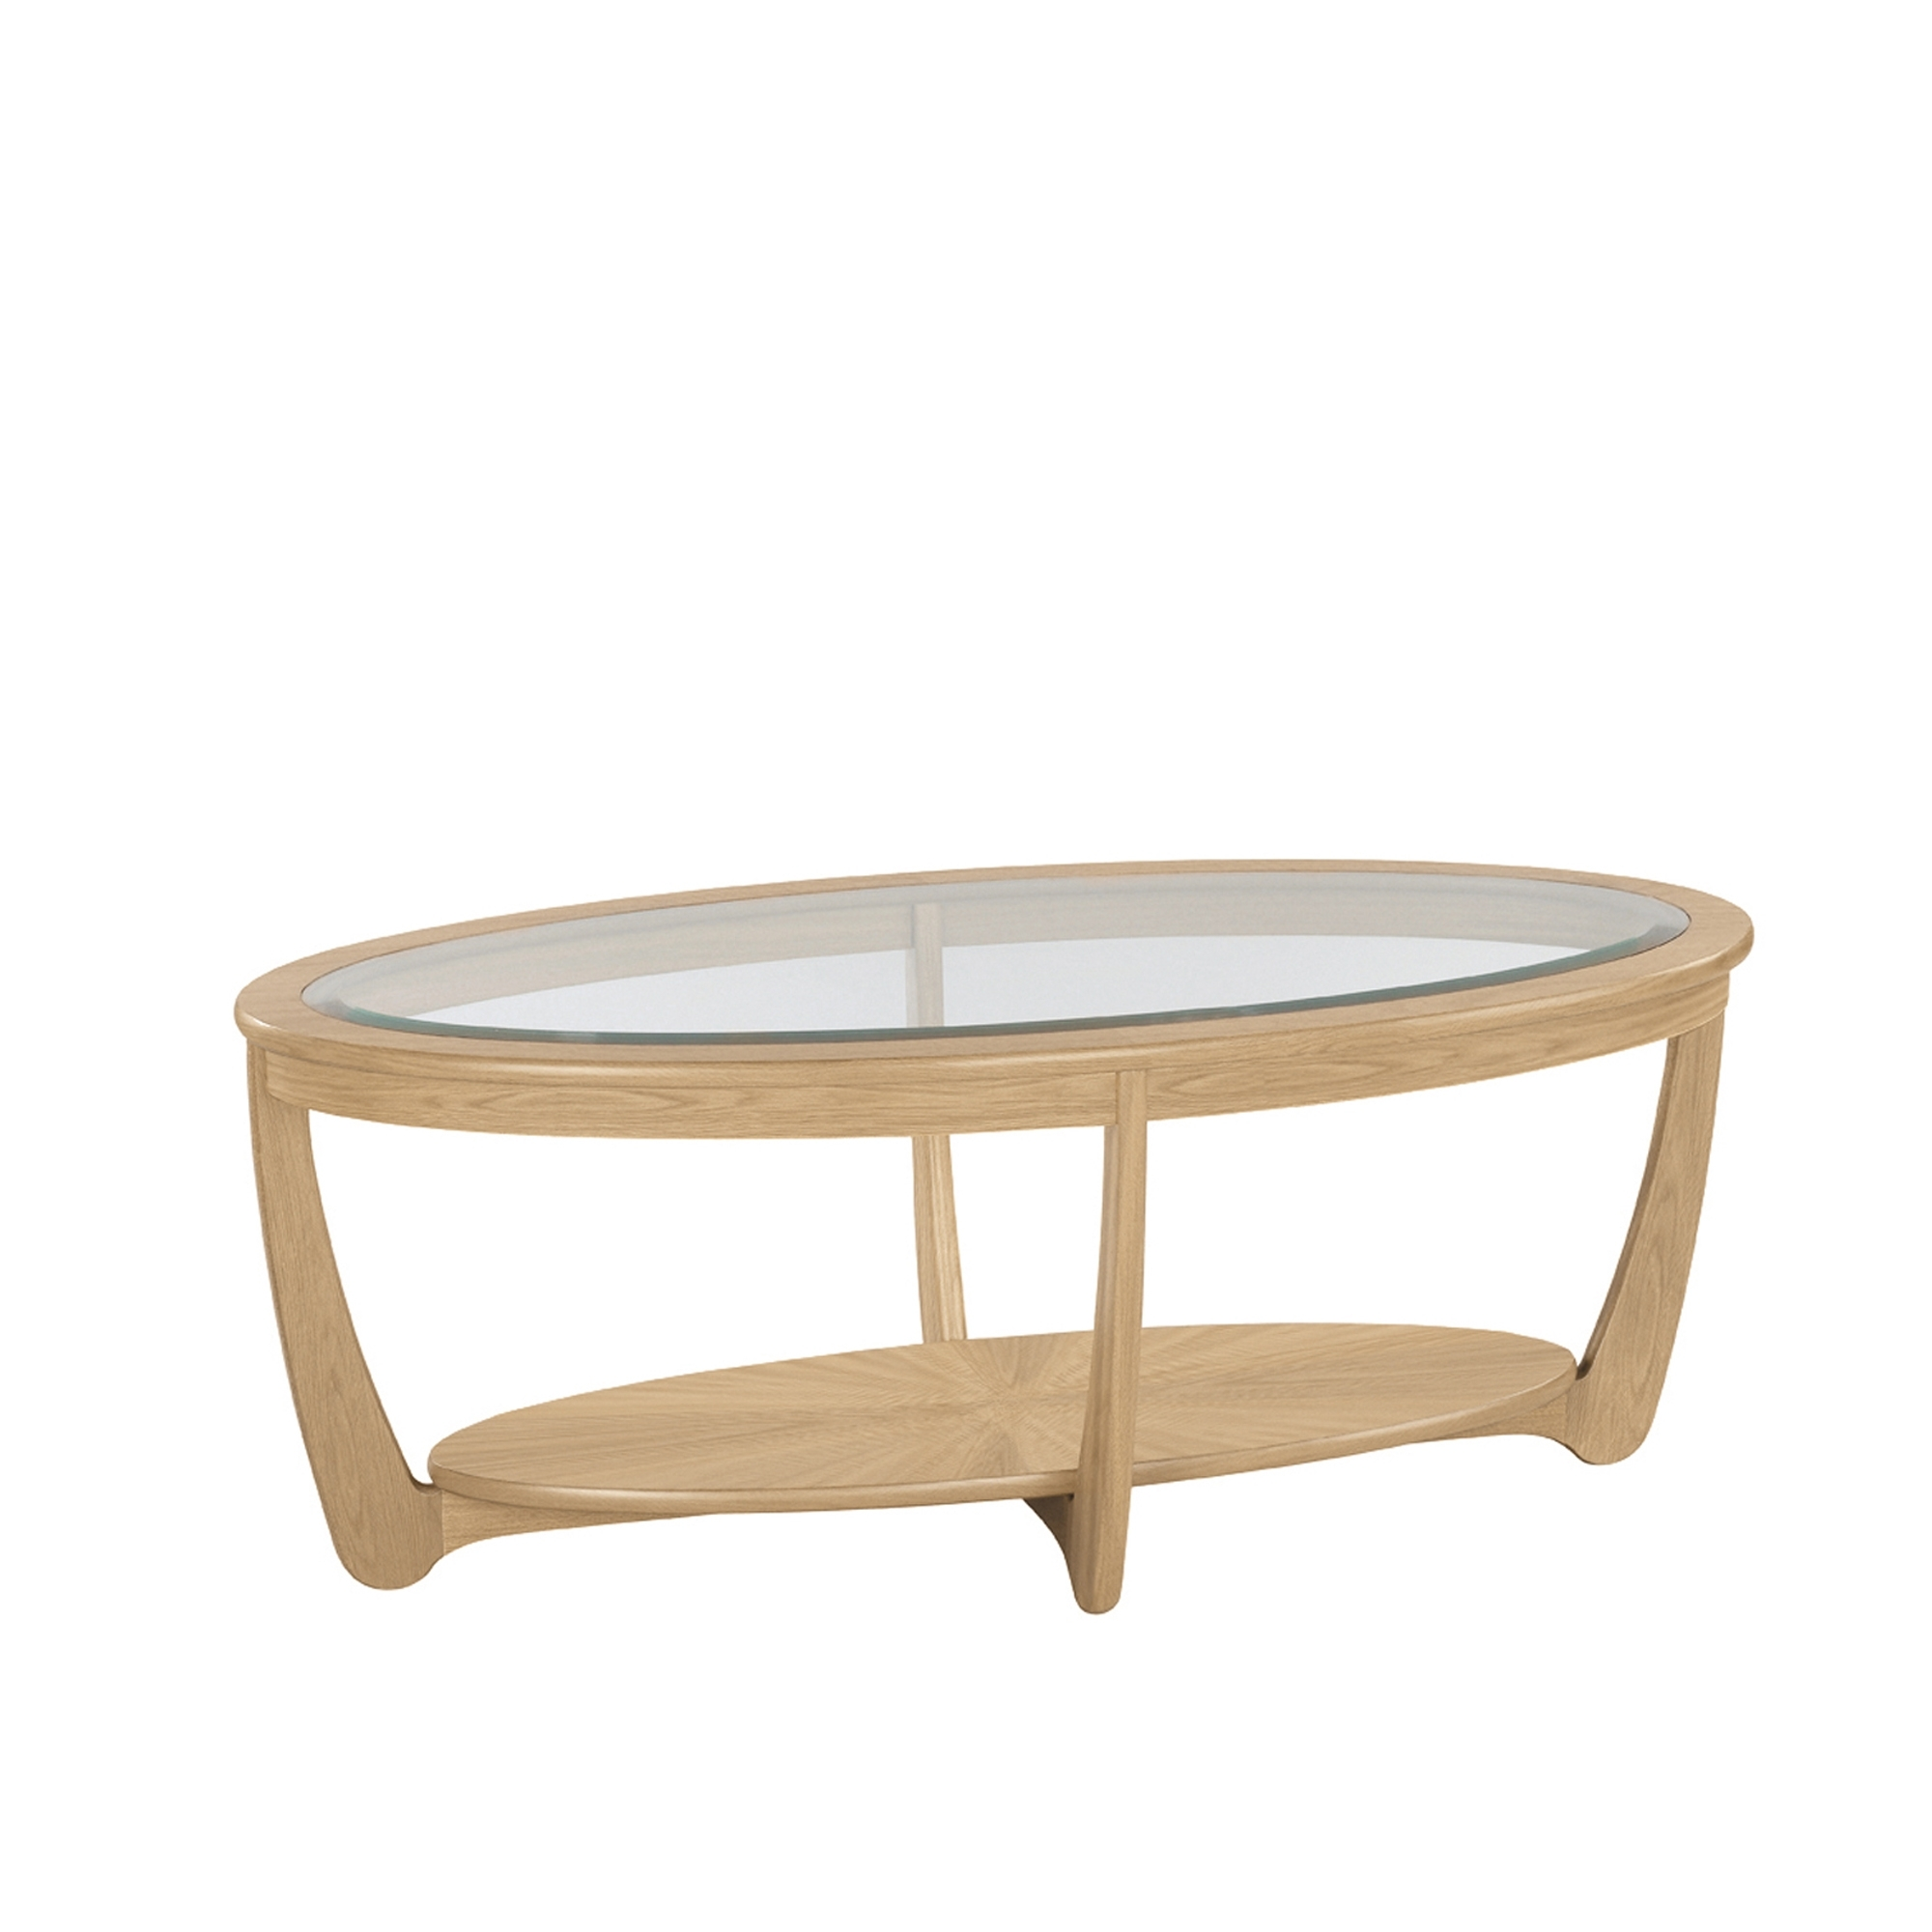 Oval Espresso Coffee Table: Nathan Shades Oak Glass Top Oval Coffee Table